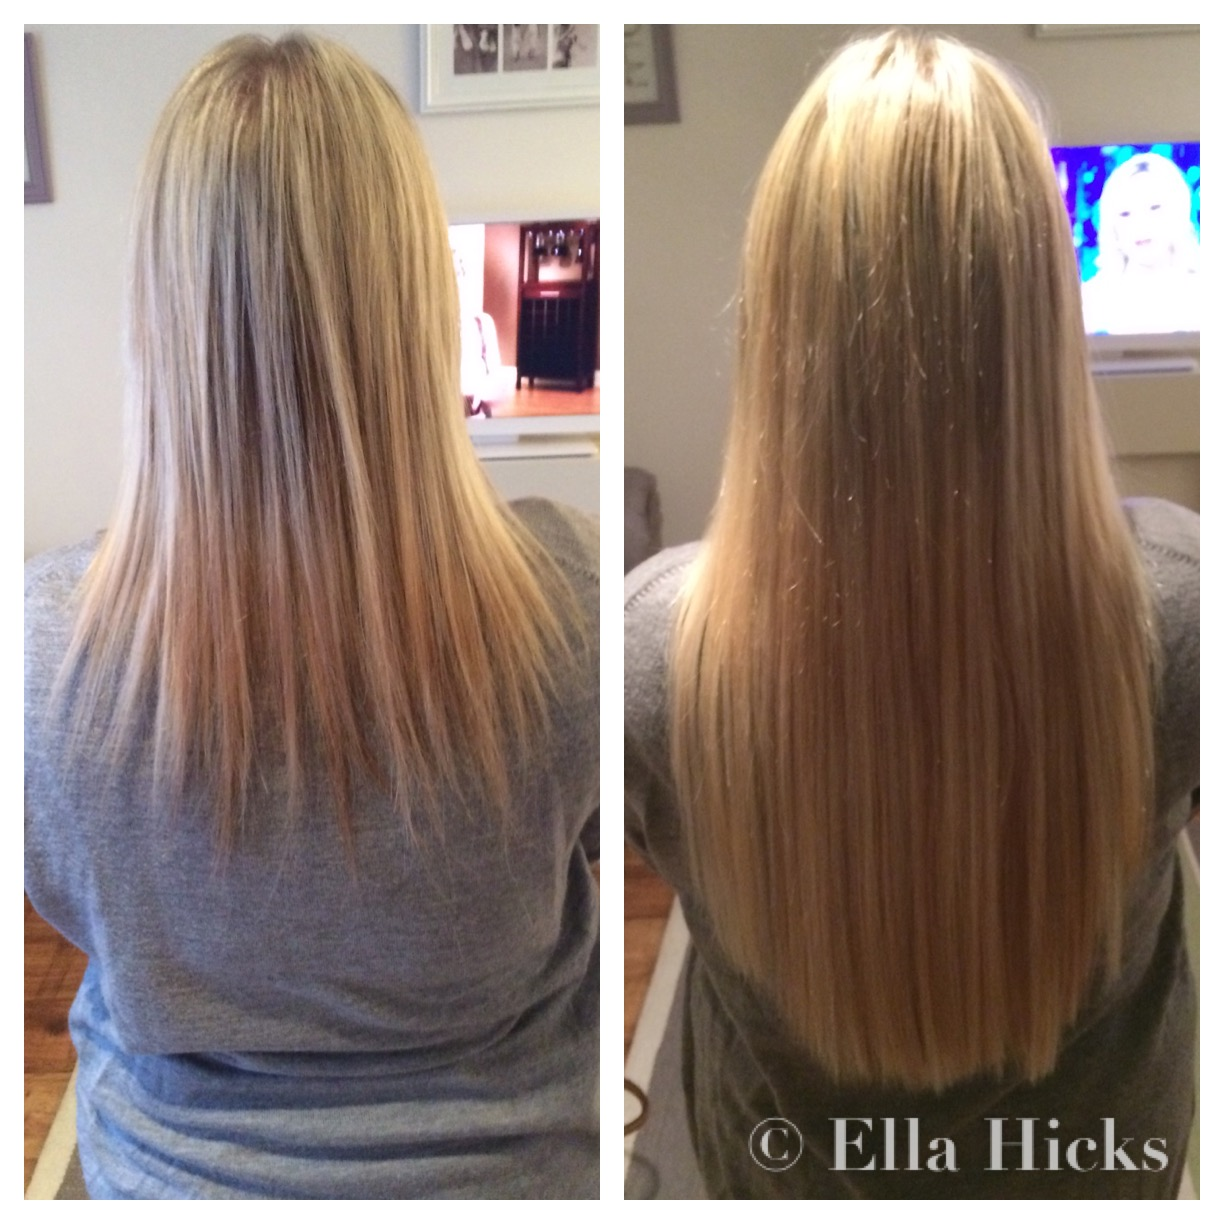 Ella hicks hair extensions portfolio long mixed blonde micro ring extensions pmusecretfo Images